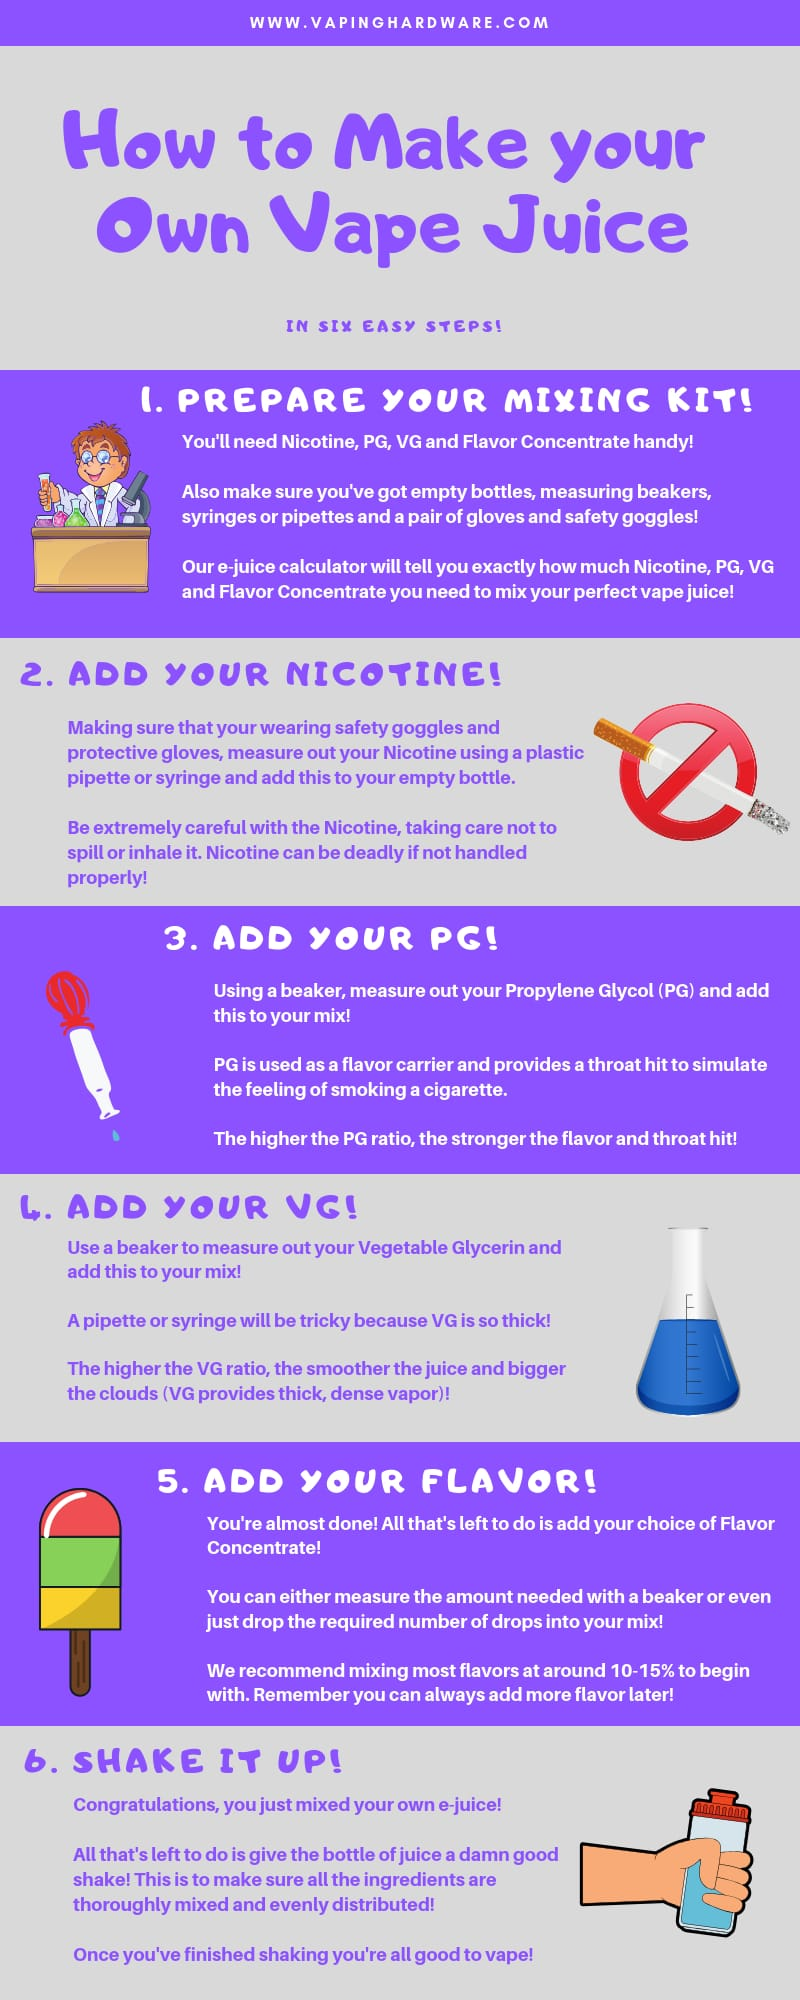 How to make your own e liquid in 6 easy steps!